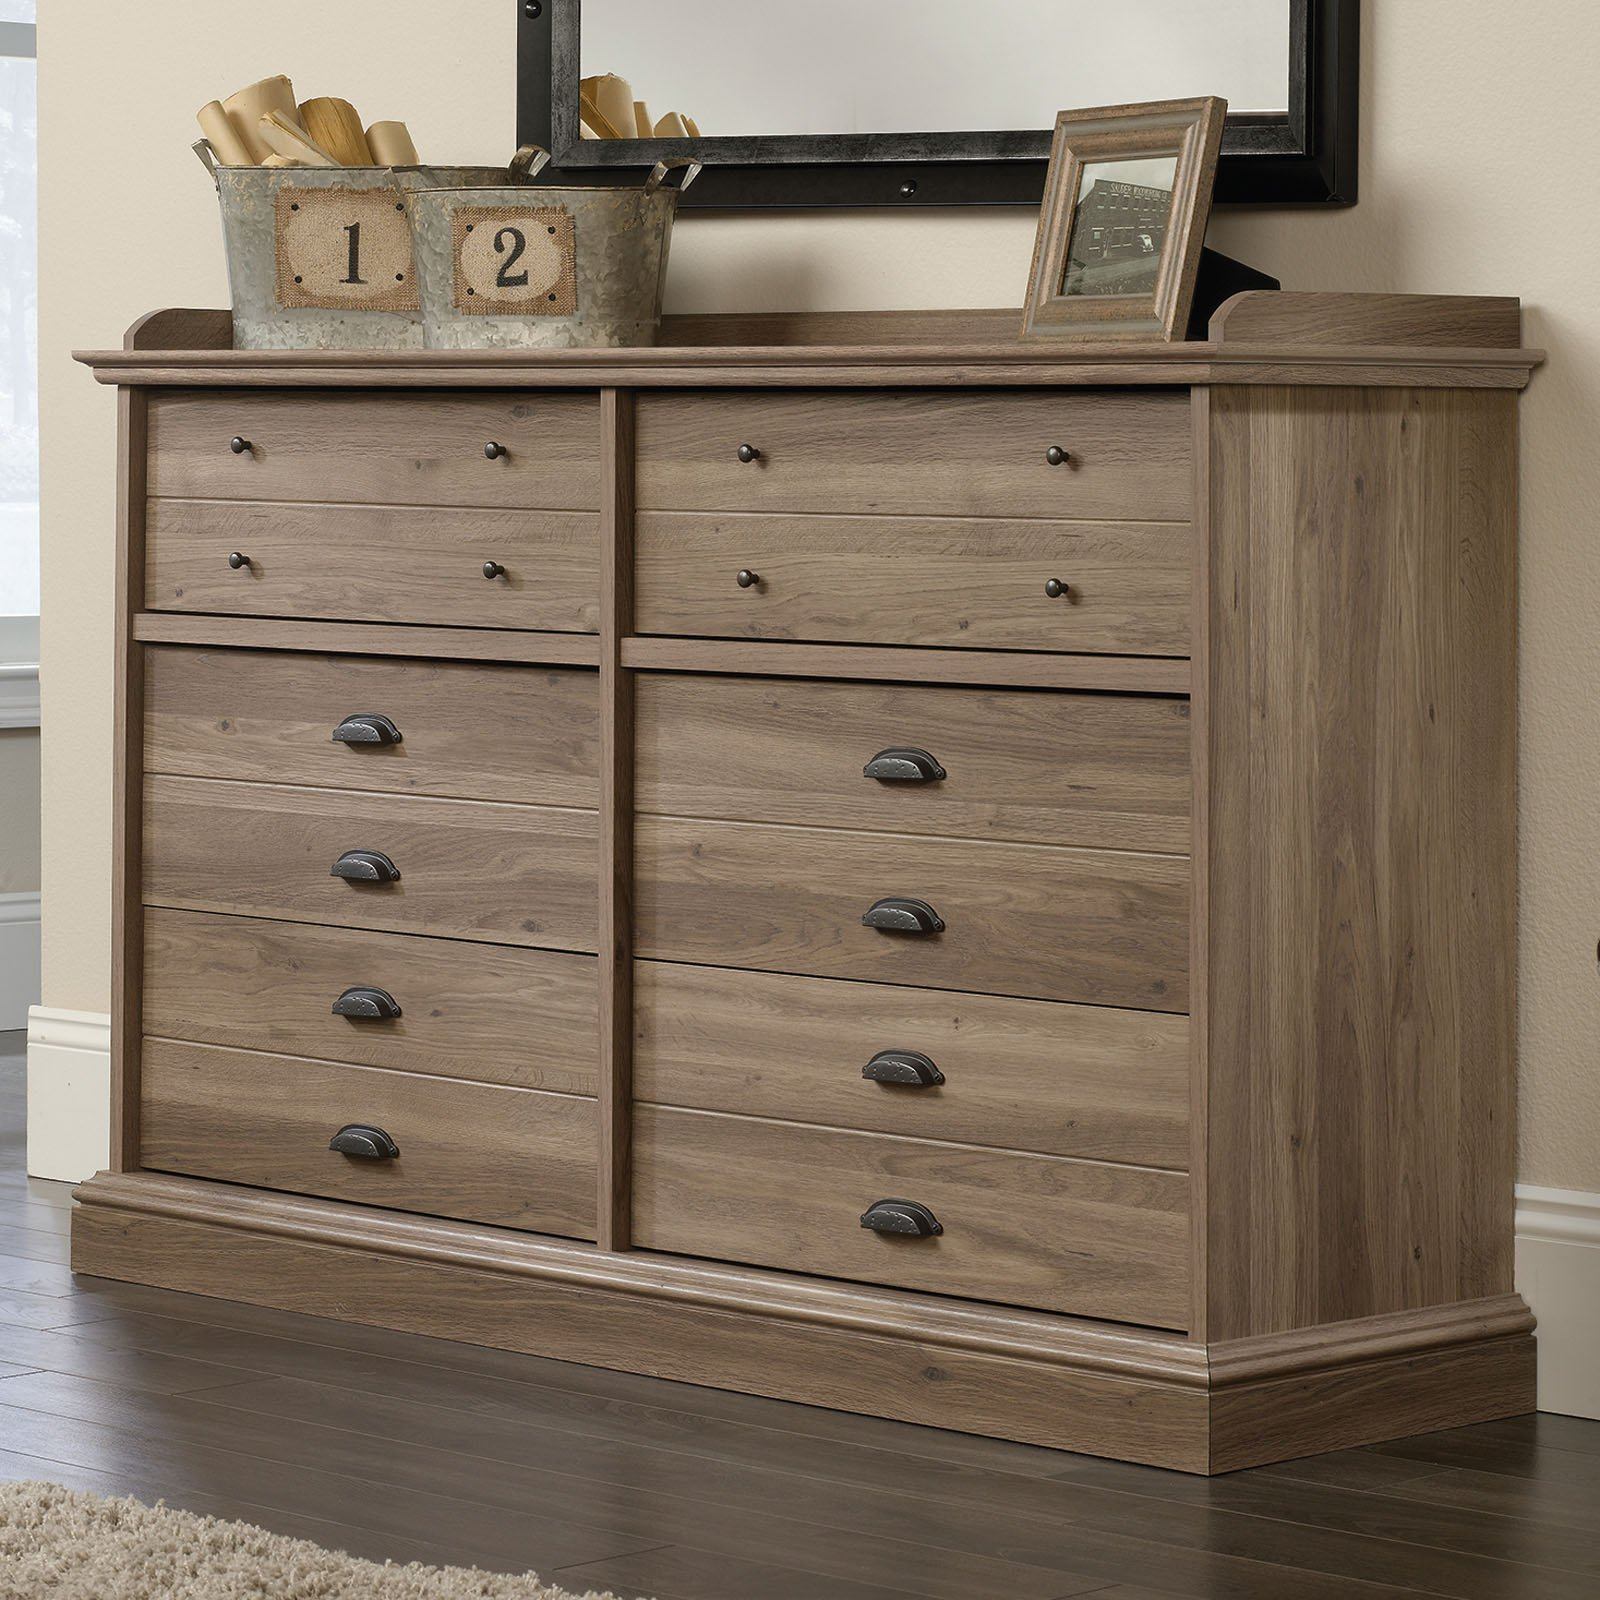 Sauder Barrister Lane 6 Drawer Dresser